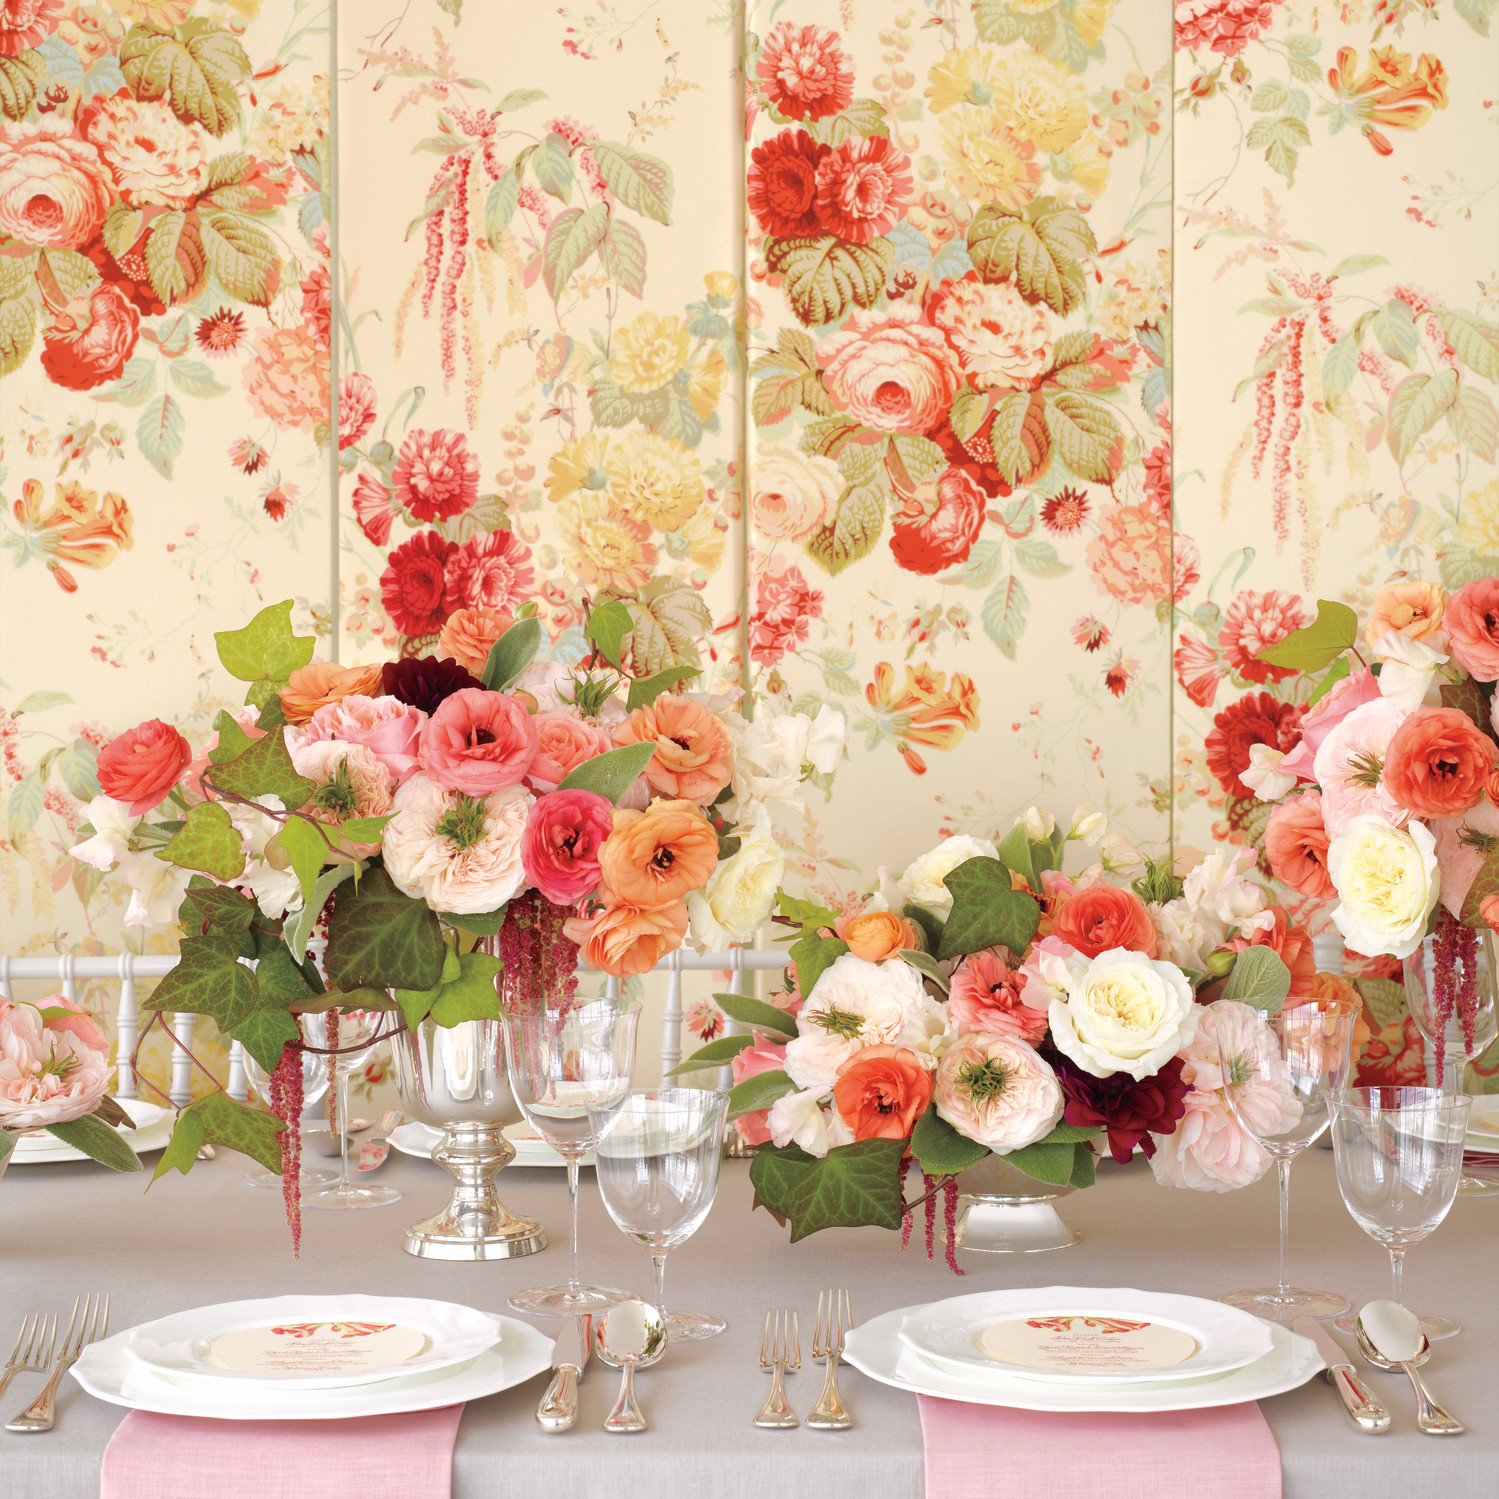 flower decorations for a wedding floral fabric inspired wedding ideas martha stewart weddings 4161